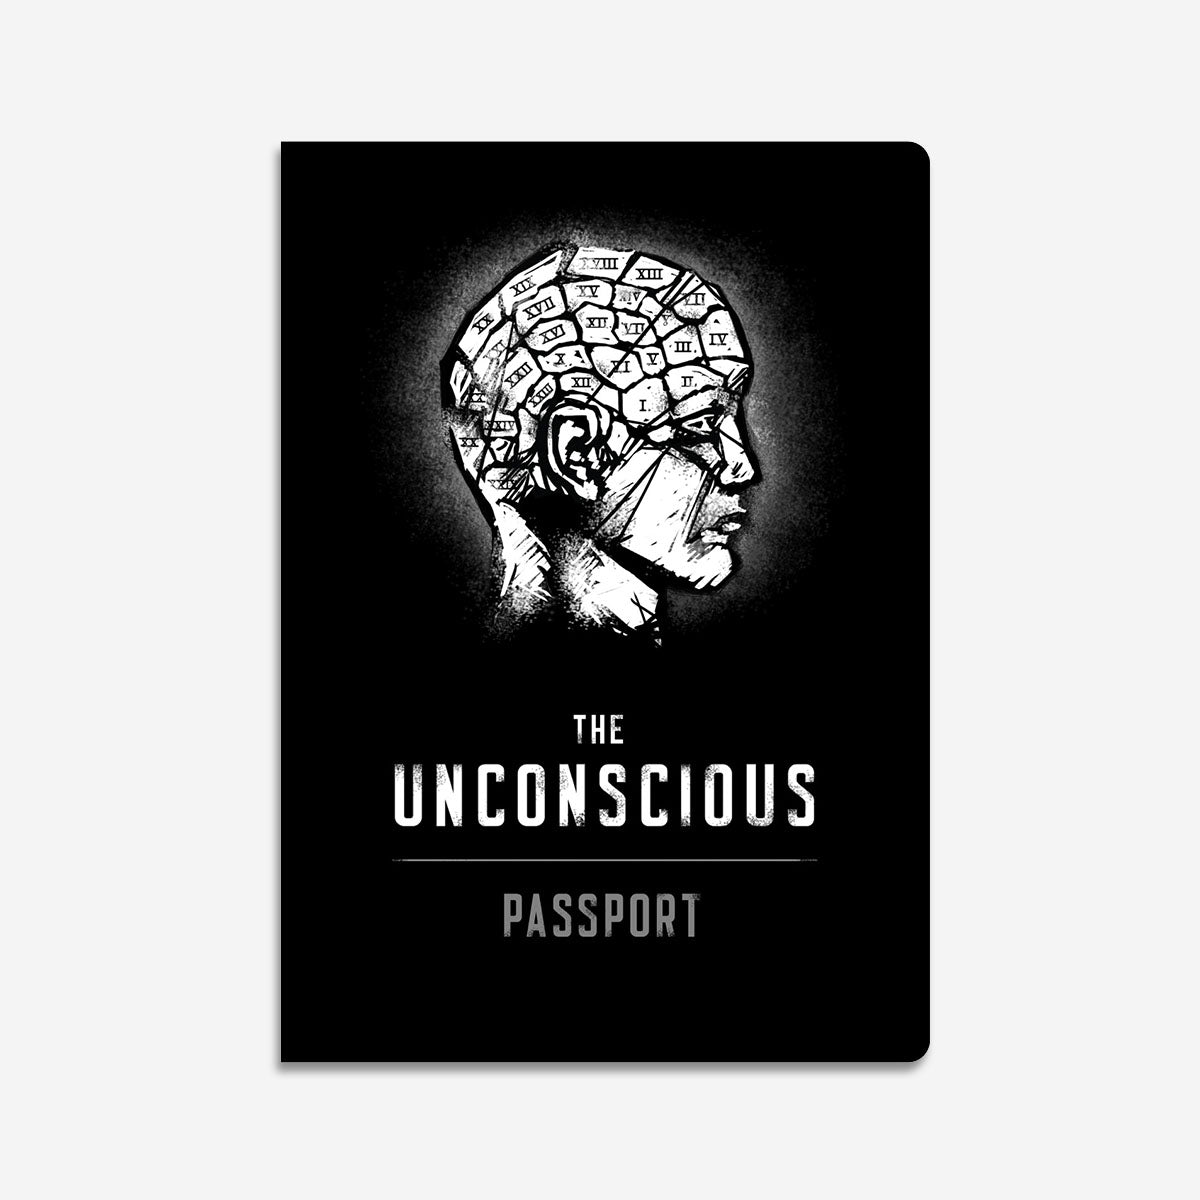 The Unconscious Passport